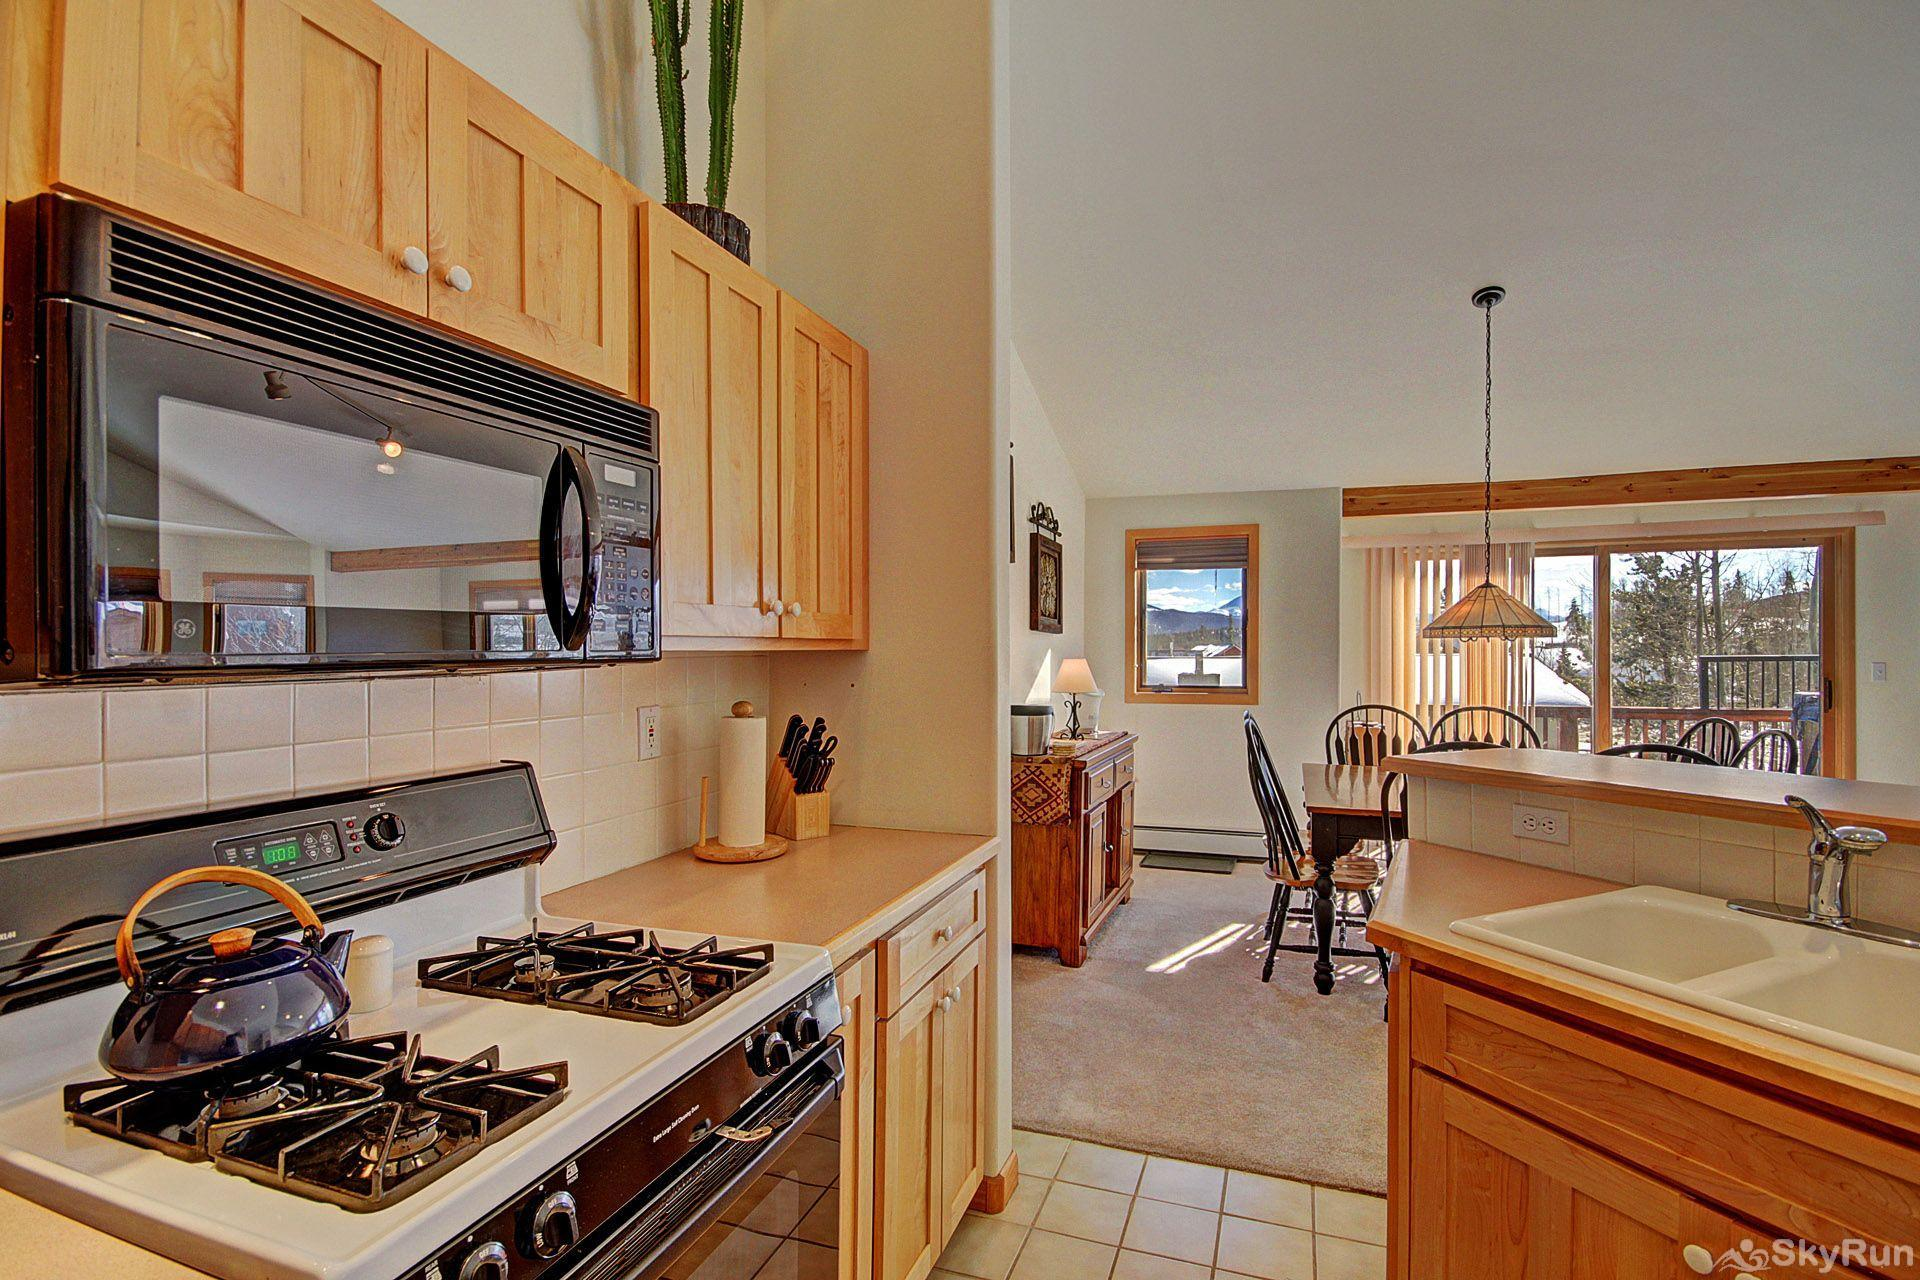 Sauterne Sanctuary 3BR 3BA Full Kitchen